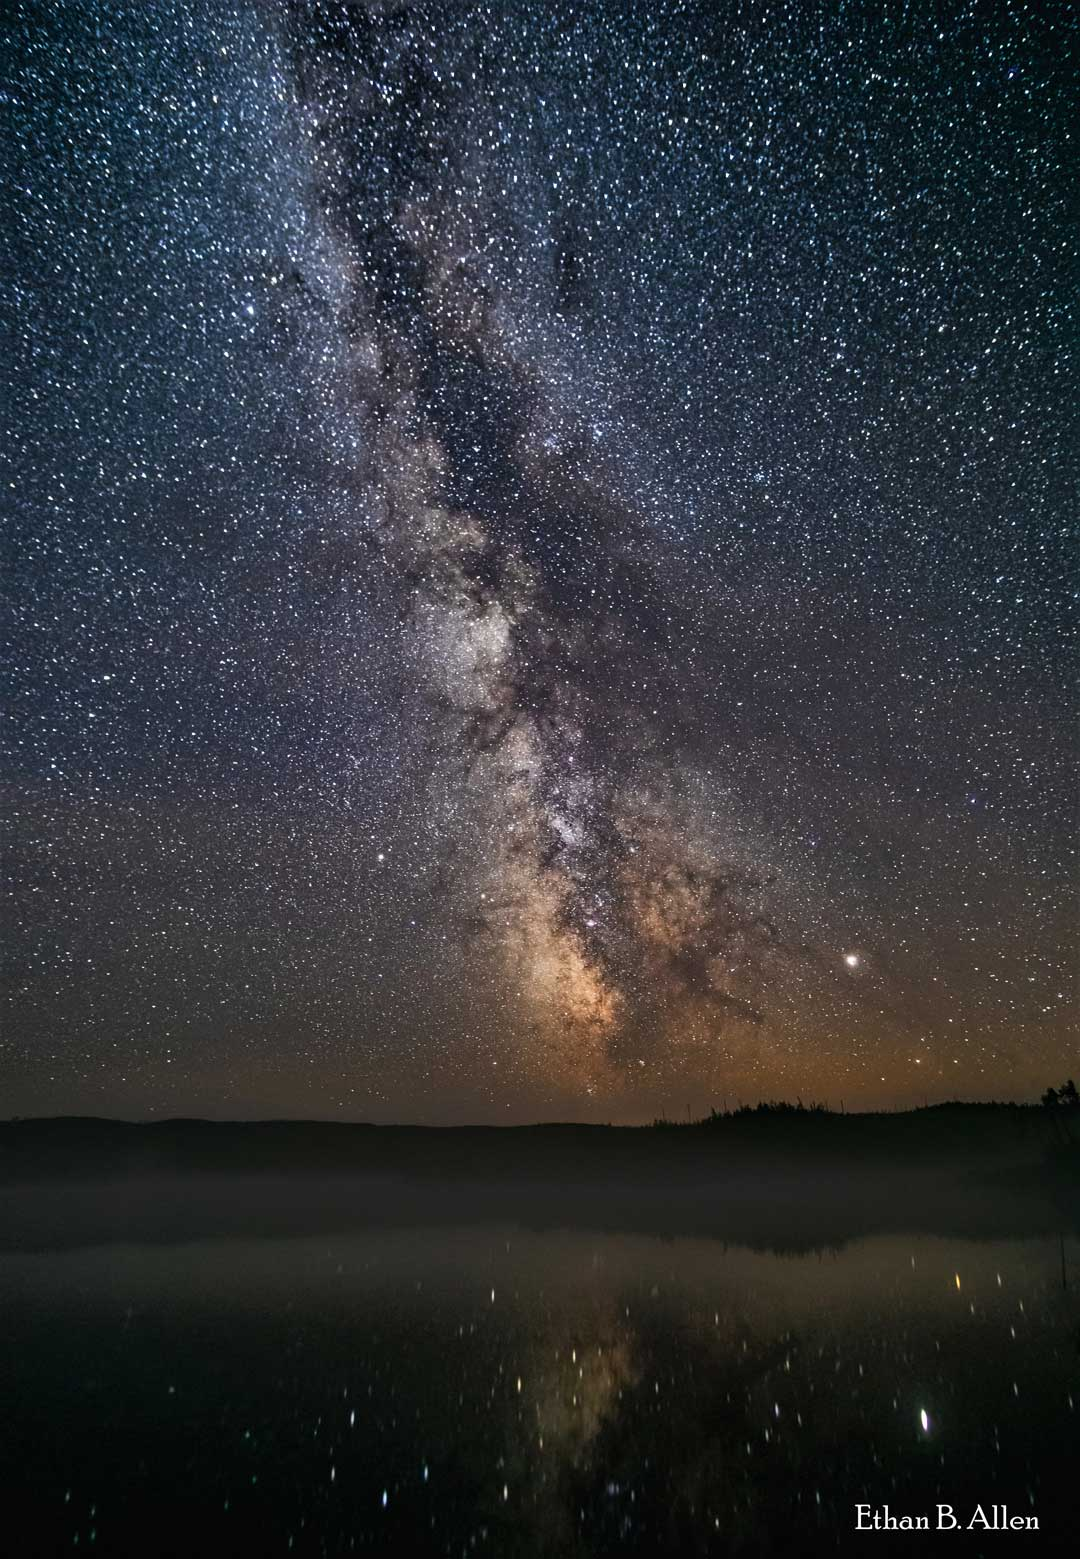 Milky Way over the BWCAW